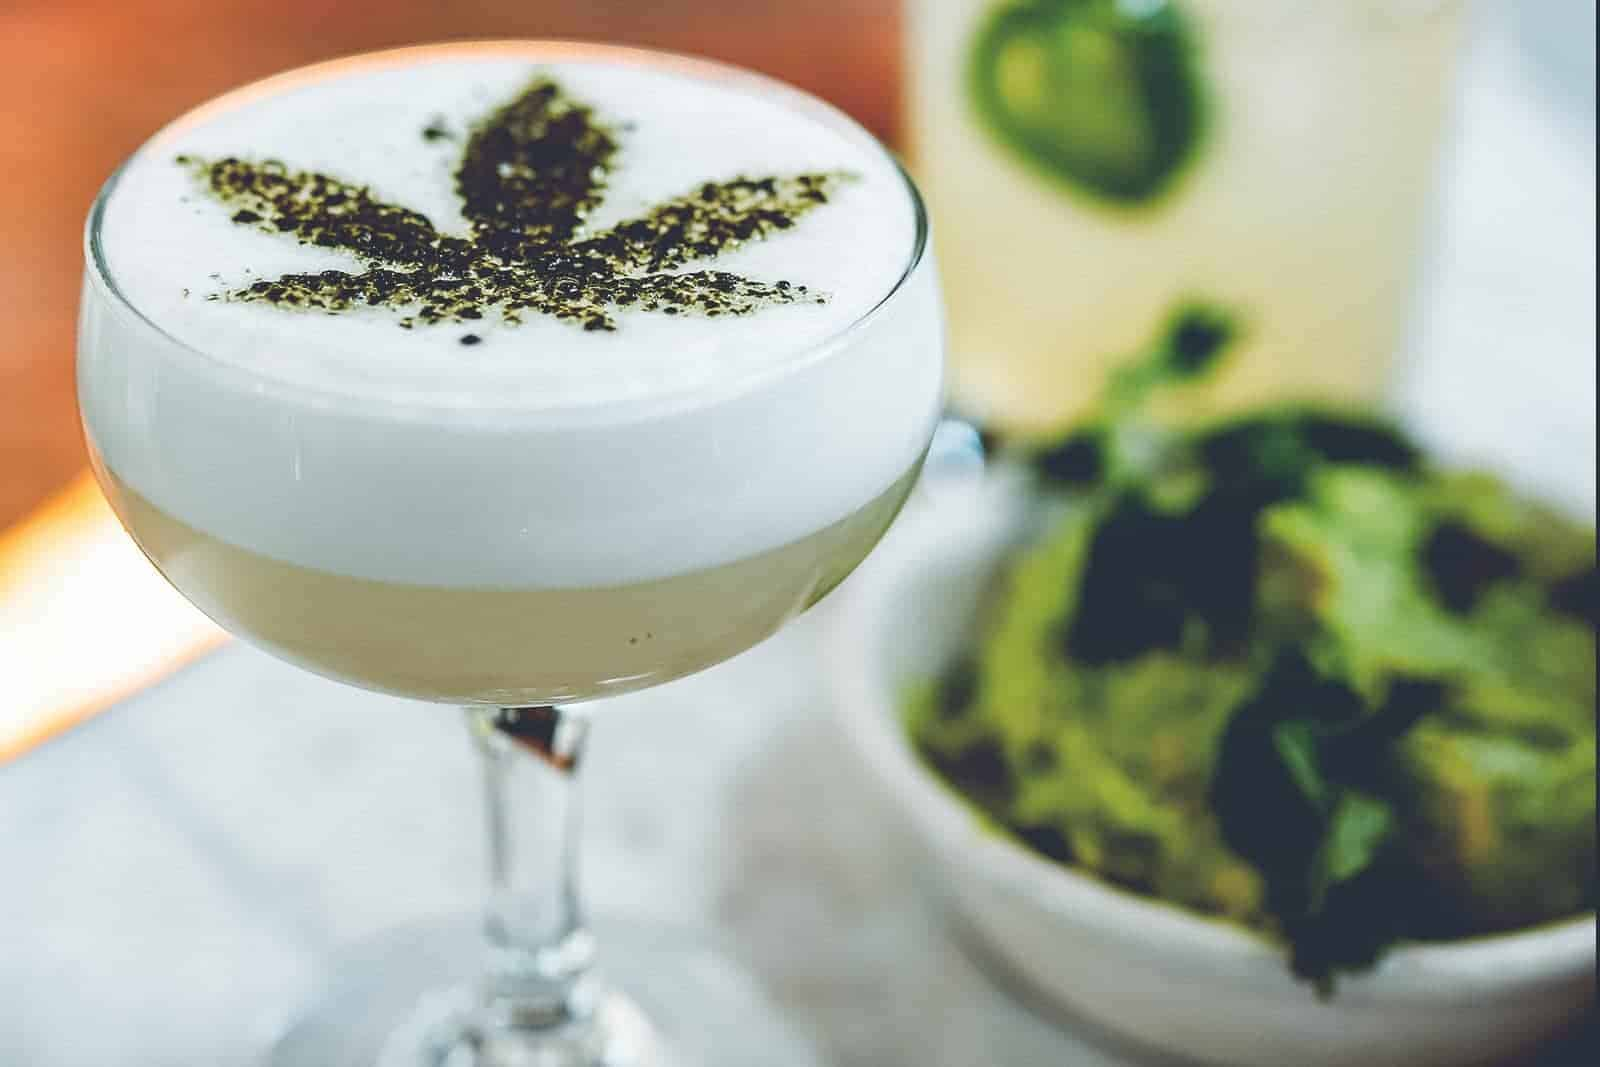 Buy Marijuana Online With Credit Card Scientists have identified the positive effects of adding marijuana to food